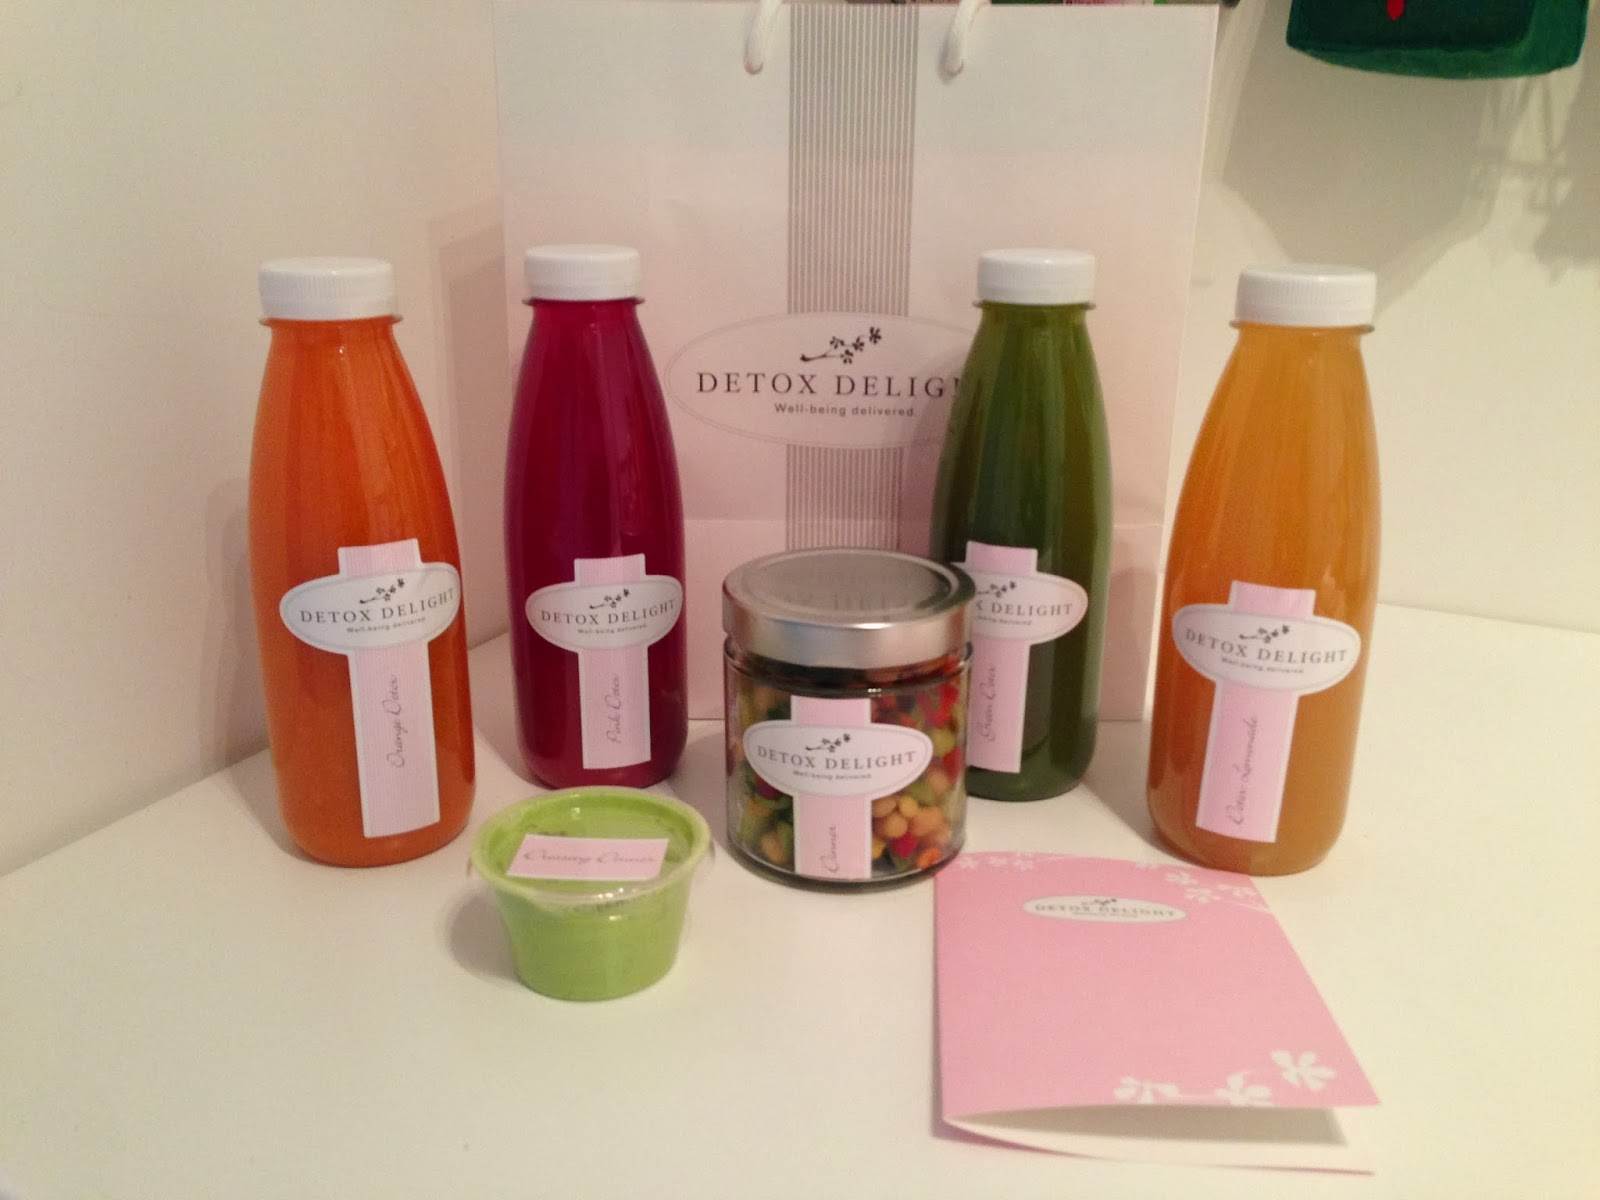 Detox Delight, Dinner & Juice Delight, Patrizia Paul, The Paste Blog, pasteblog, Detox, Detox Kur